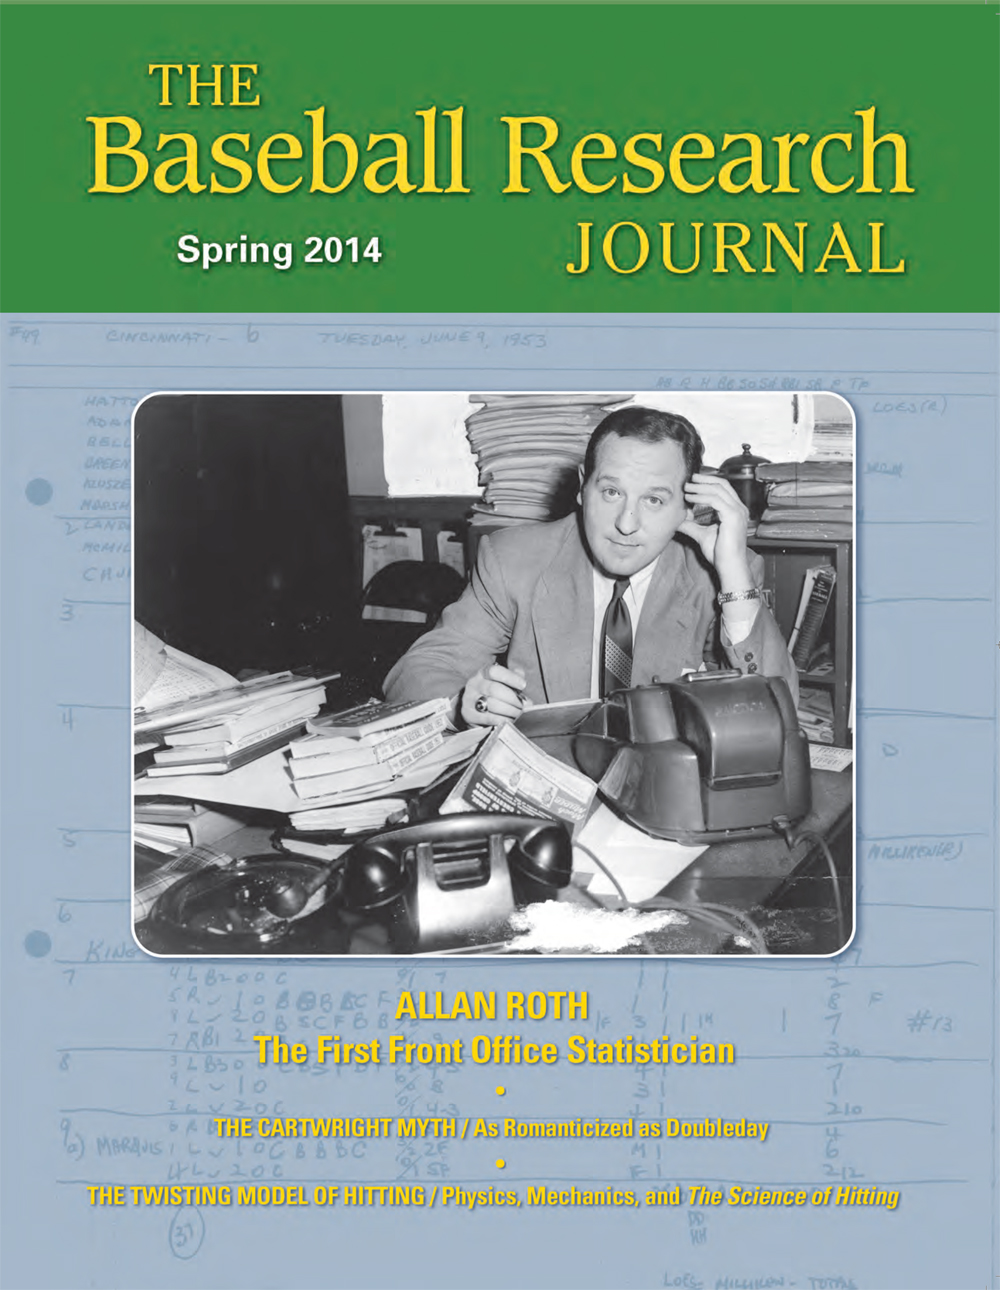 This week in sabr september 5 2014 society for american baseball get the fall 2014 baseball research journal delivered straight to your inbox fandeluxe Choice Image